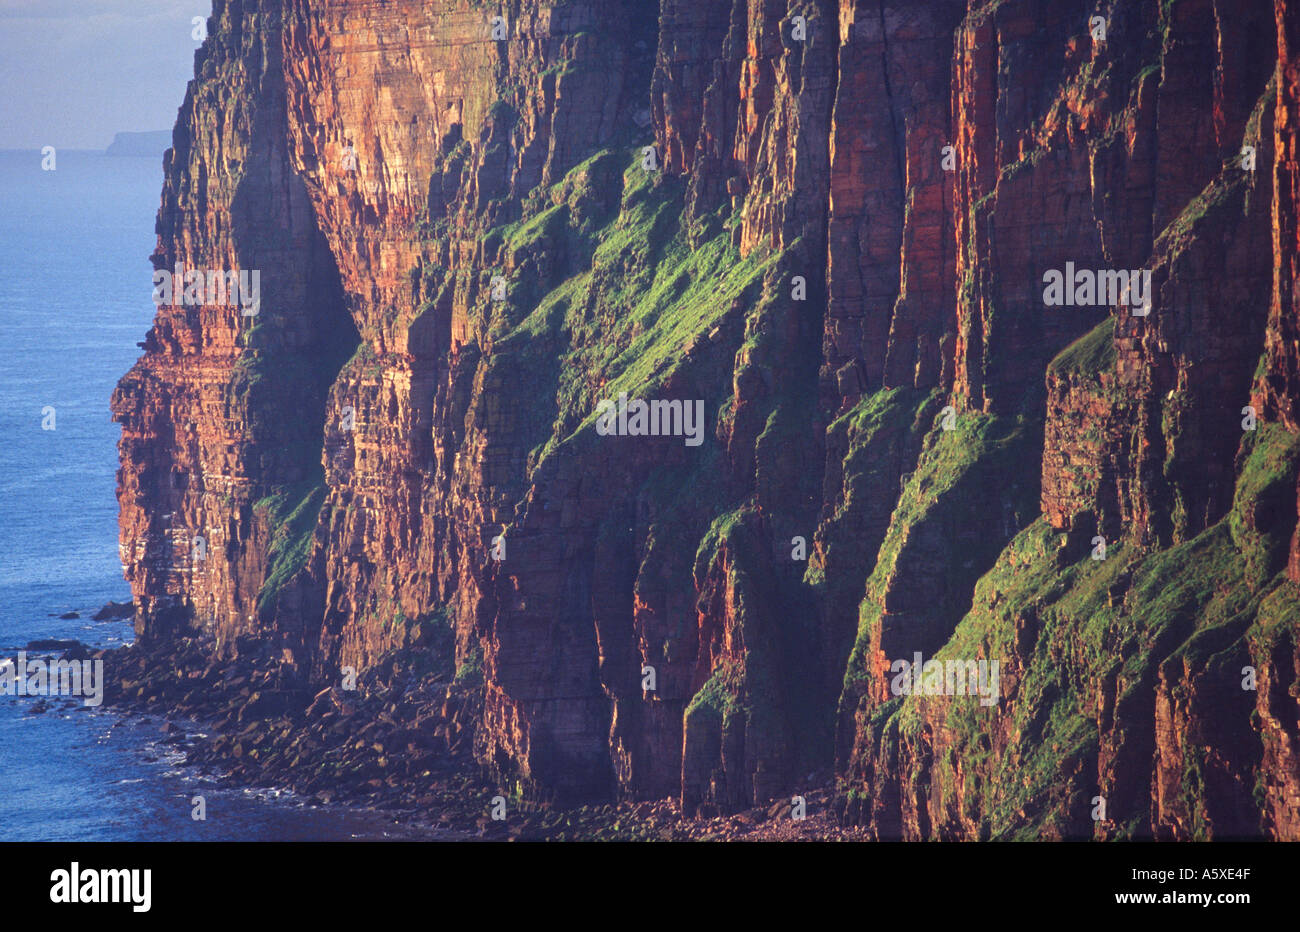 The sea cliffs of St Johns Head, Hoy, Orkney Isles, Scotland - Stock Image